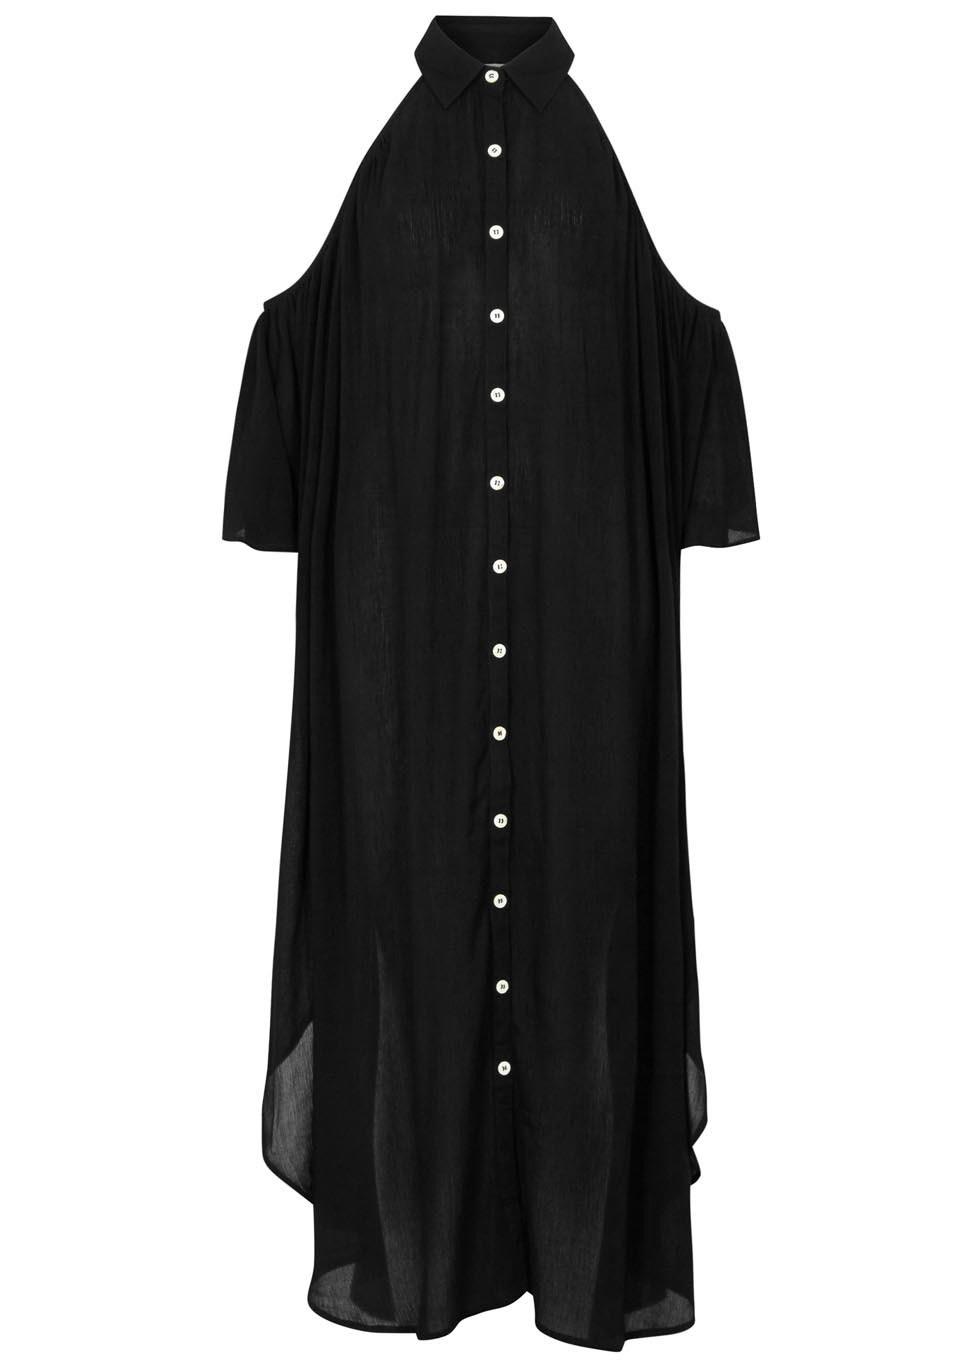 Black Flared Voile Dress - style: shirt; length: below the knee; neckline: shirt collar/peter pan/zip with opening; fit: loose; pattern: plain; predominant colour: black; occasions: casual, creative work; fibres: viscose/rayon - 100%; shoulder detail: cut out shoulder; sleeve length: 3/4 length; sleeve style: standard; pattern type: fabric; texture group: other - light to midweight; season: s/s 2016